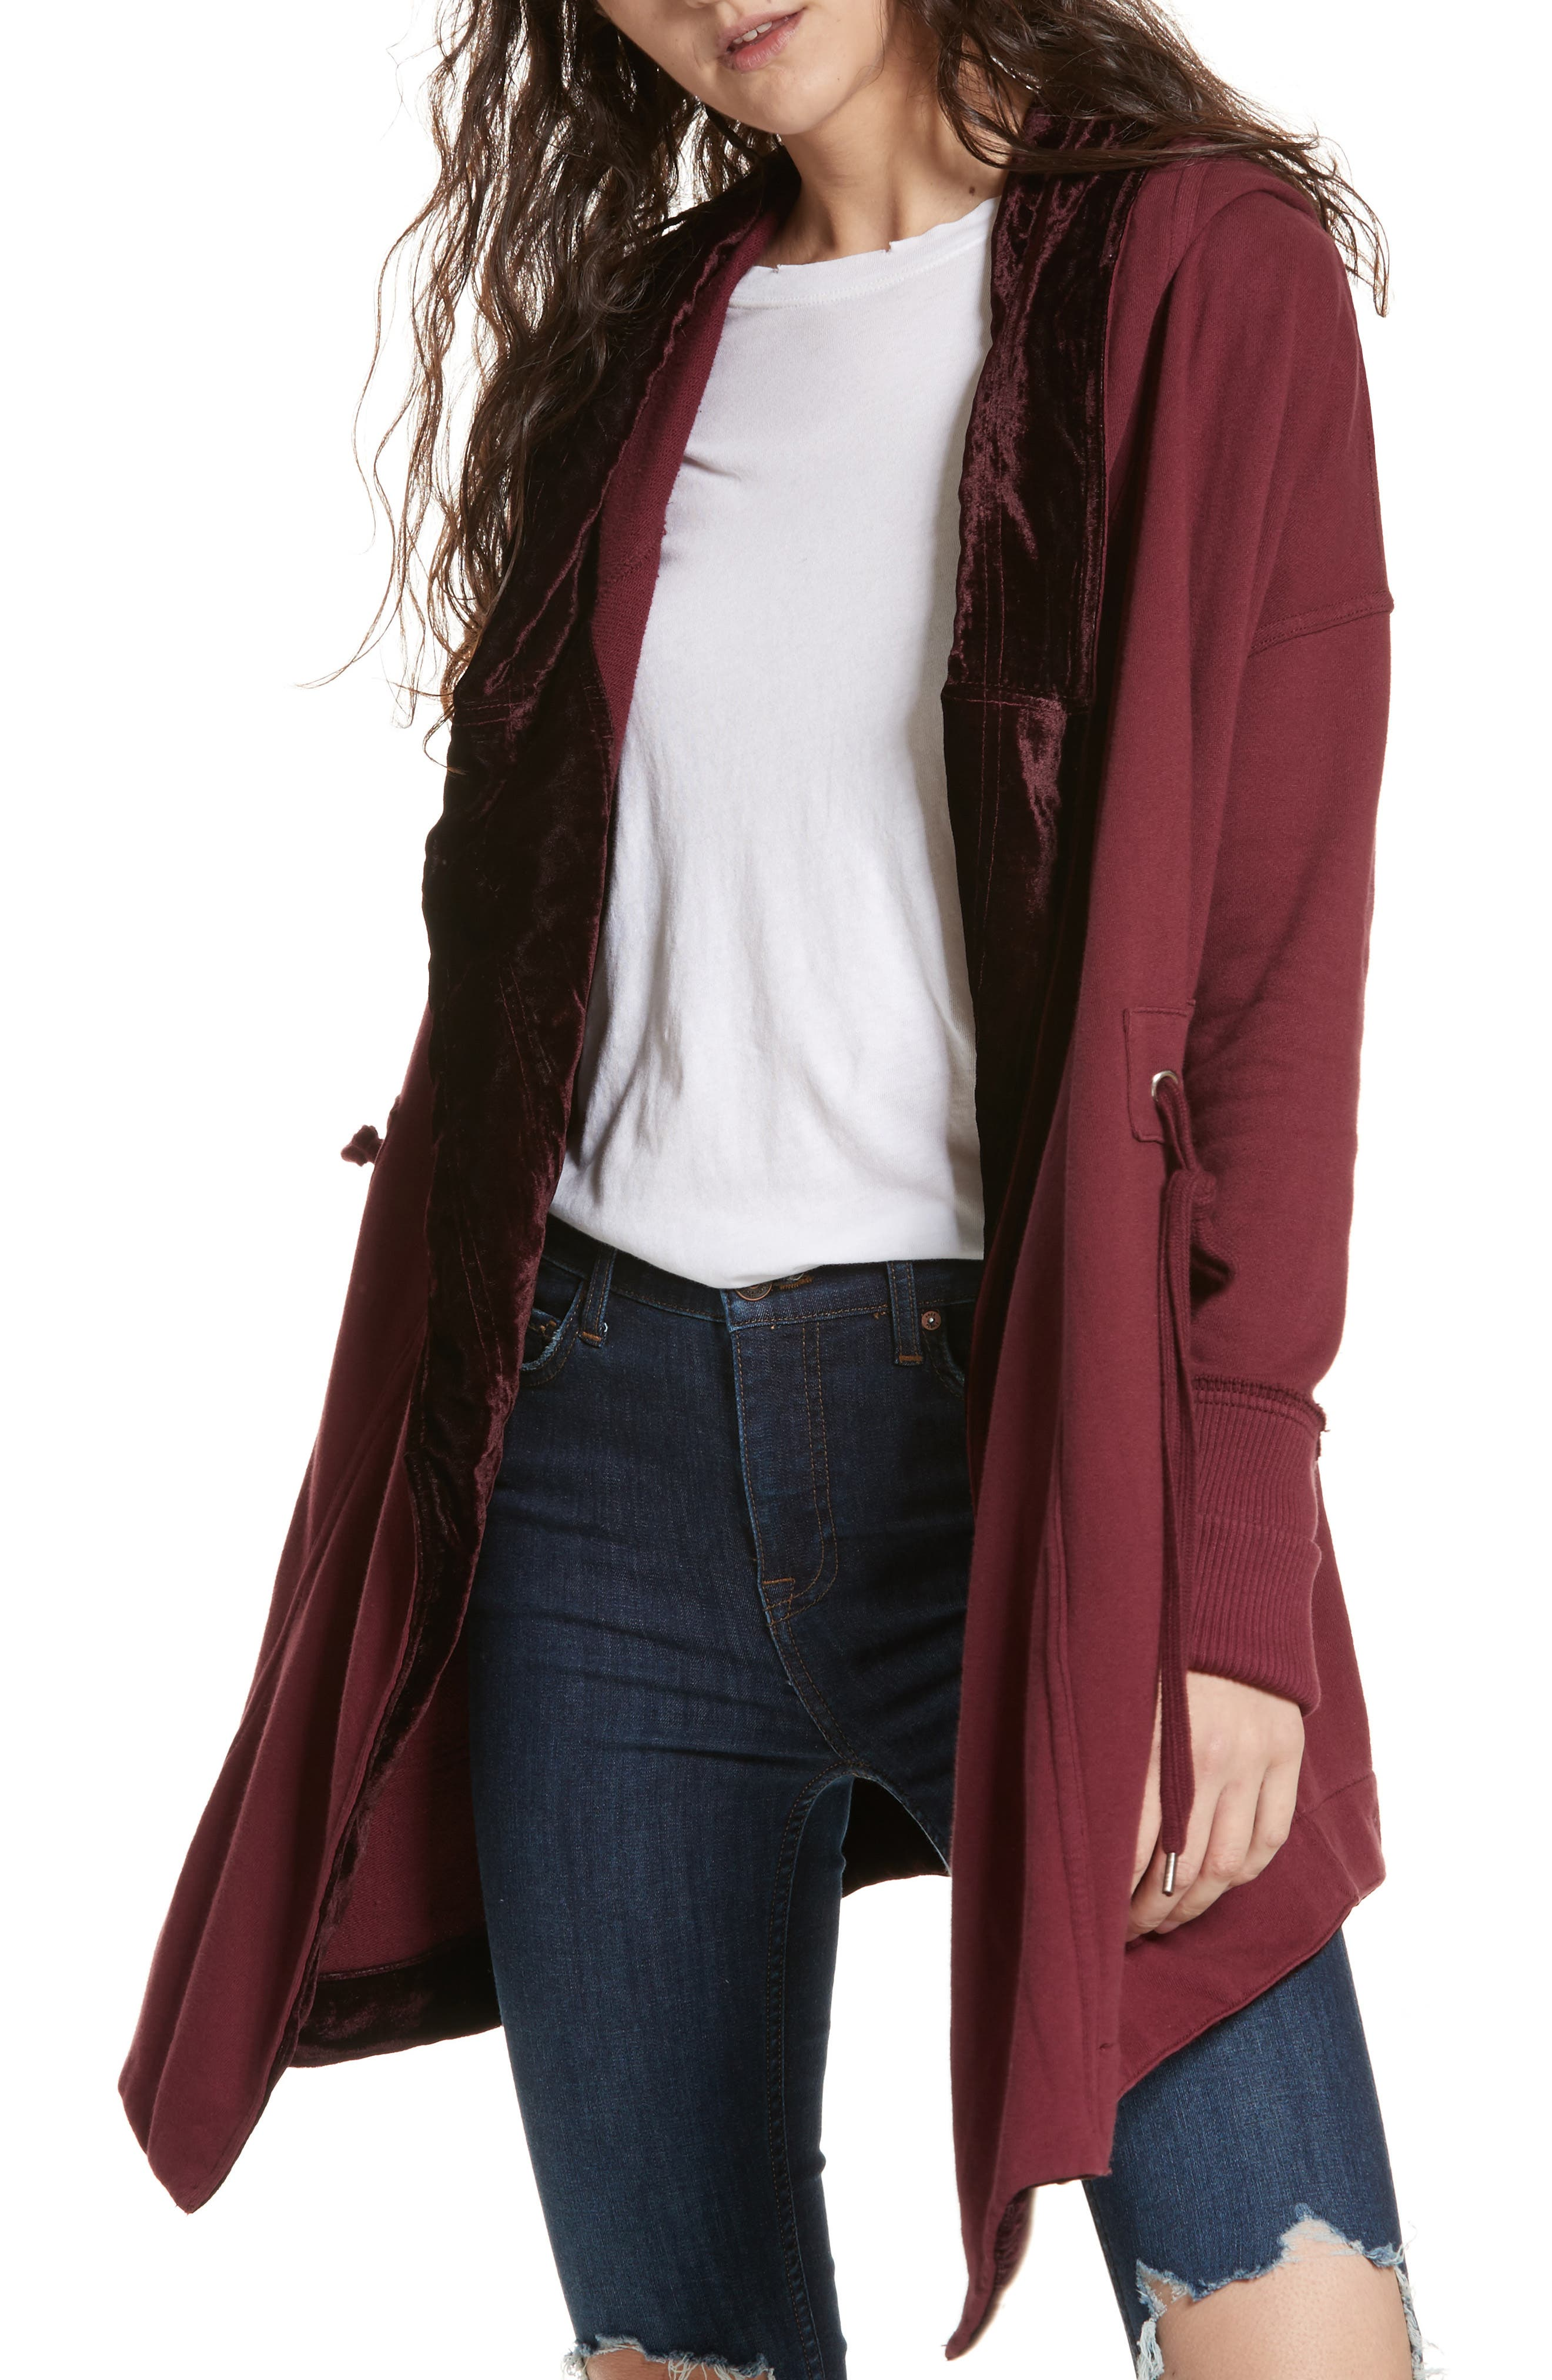 Westwood Cardigan,                         Main,                         color, Wine